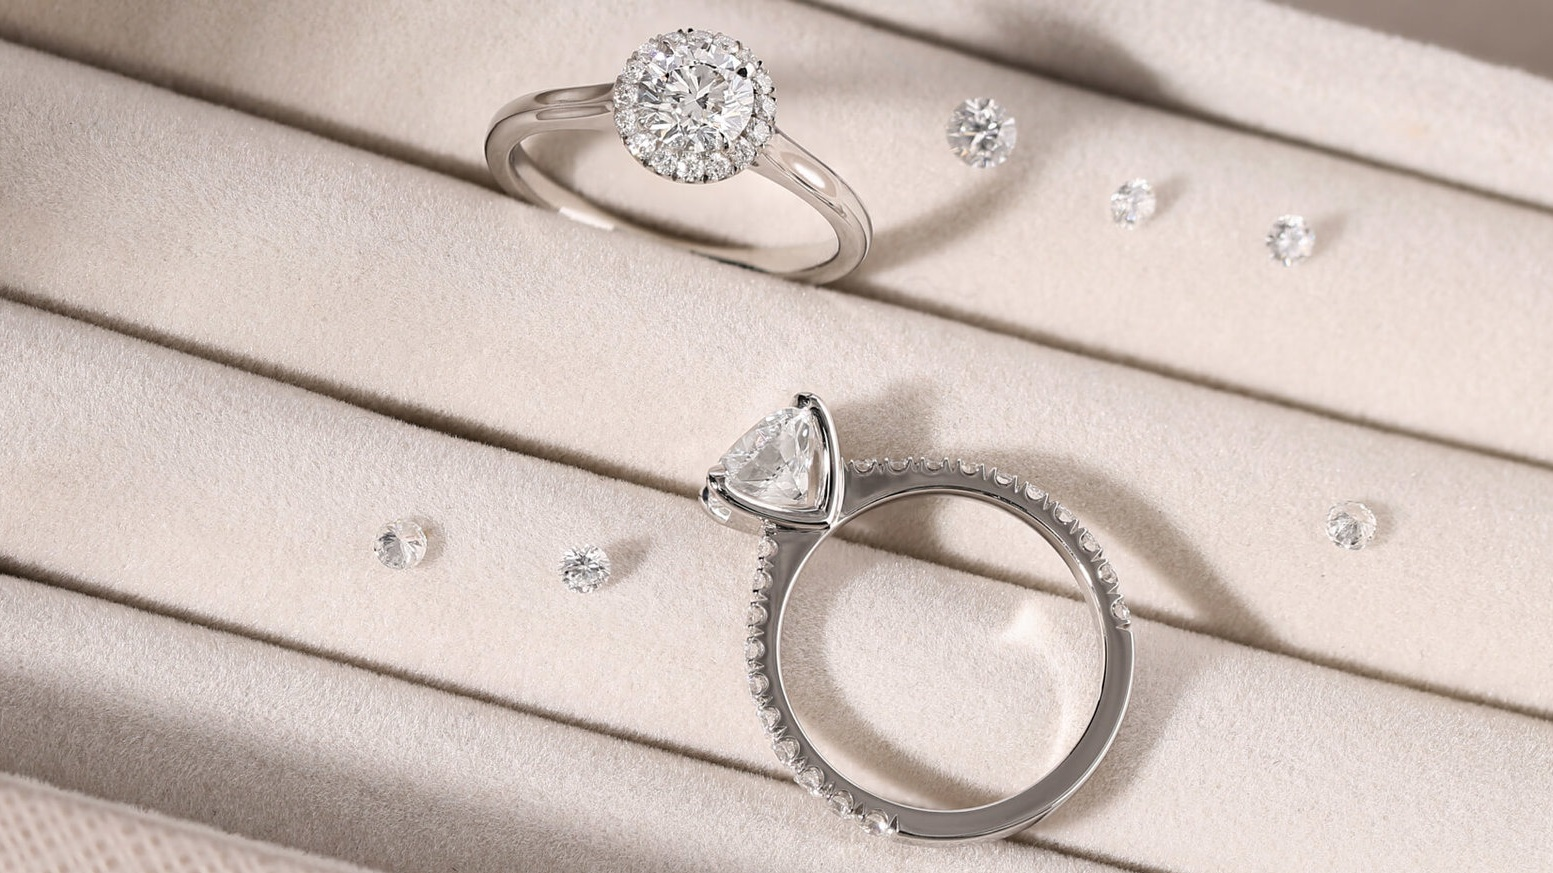 Designed & crafted especially for you. - We design and craft each ring in-house, from start to finish, so we can tailor our designs to you and your preferences. Be part of the process and create something truly unique.Contact or visit us